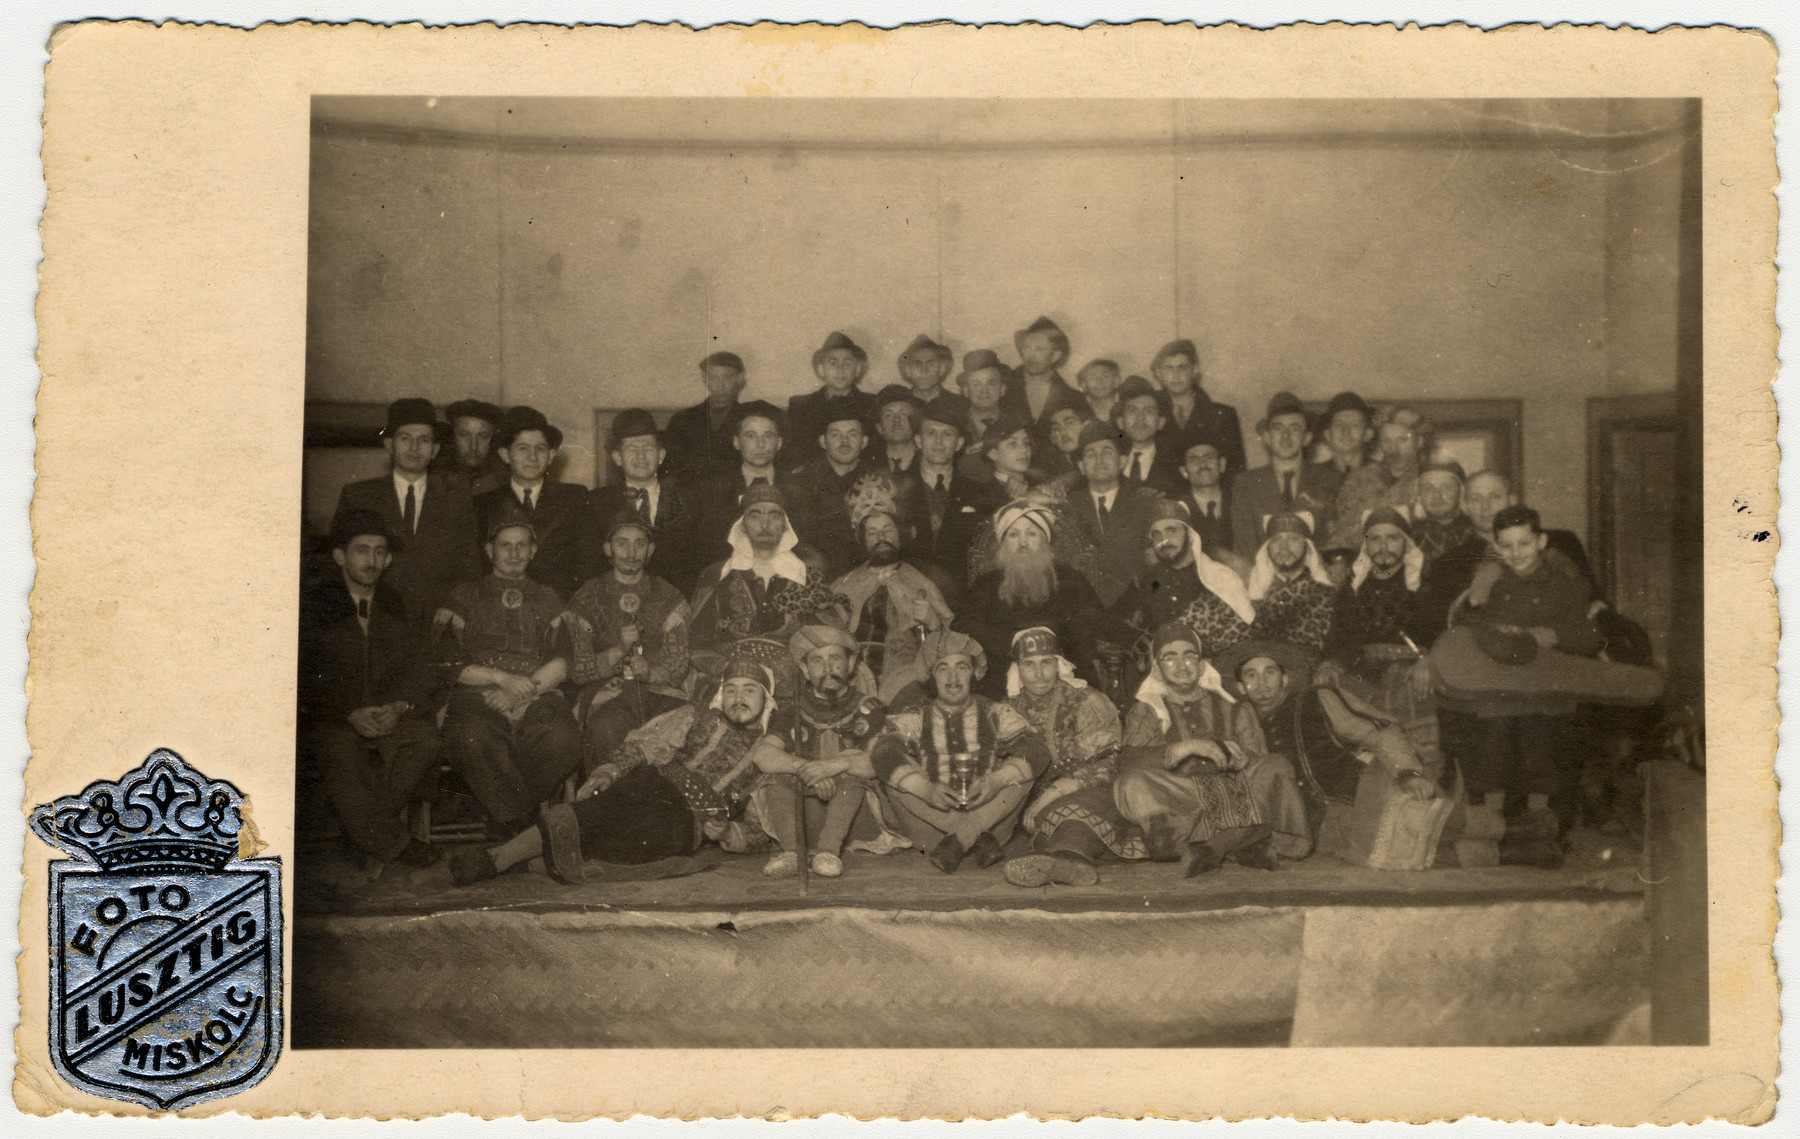 "Hungarian Jewish survivors perform the ldrama with incidental music ""Yosefspiel"" (The Legend of Joseph).  Among those pictured are second row, seated: 4th from left, William (Bela) Rosenthal, Moishe Shoenfeld, Jeno (Yaakov) Rosenthal.  Third row: far left Zoli Reisman, (to left of man in beret) then in hat, Pali (Paul) Reisman, Imi Reisman, the young boy over Jeno Rosenthal (seated with turban) is Alexander (Sanyi) Reisman, to his right, head at an angle with moustache Arthur Rosenthal; and Bela Reisman (wearing a hat, second from the right).  According to the aunt of the donor this photo might have been taken between 1941 and 1944."